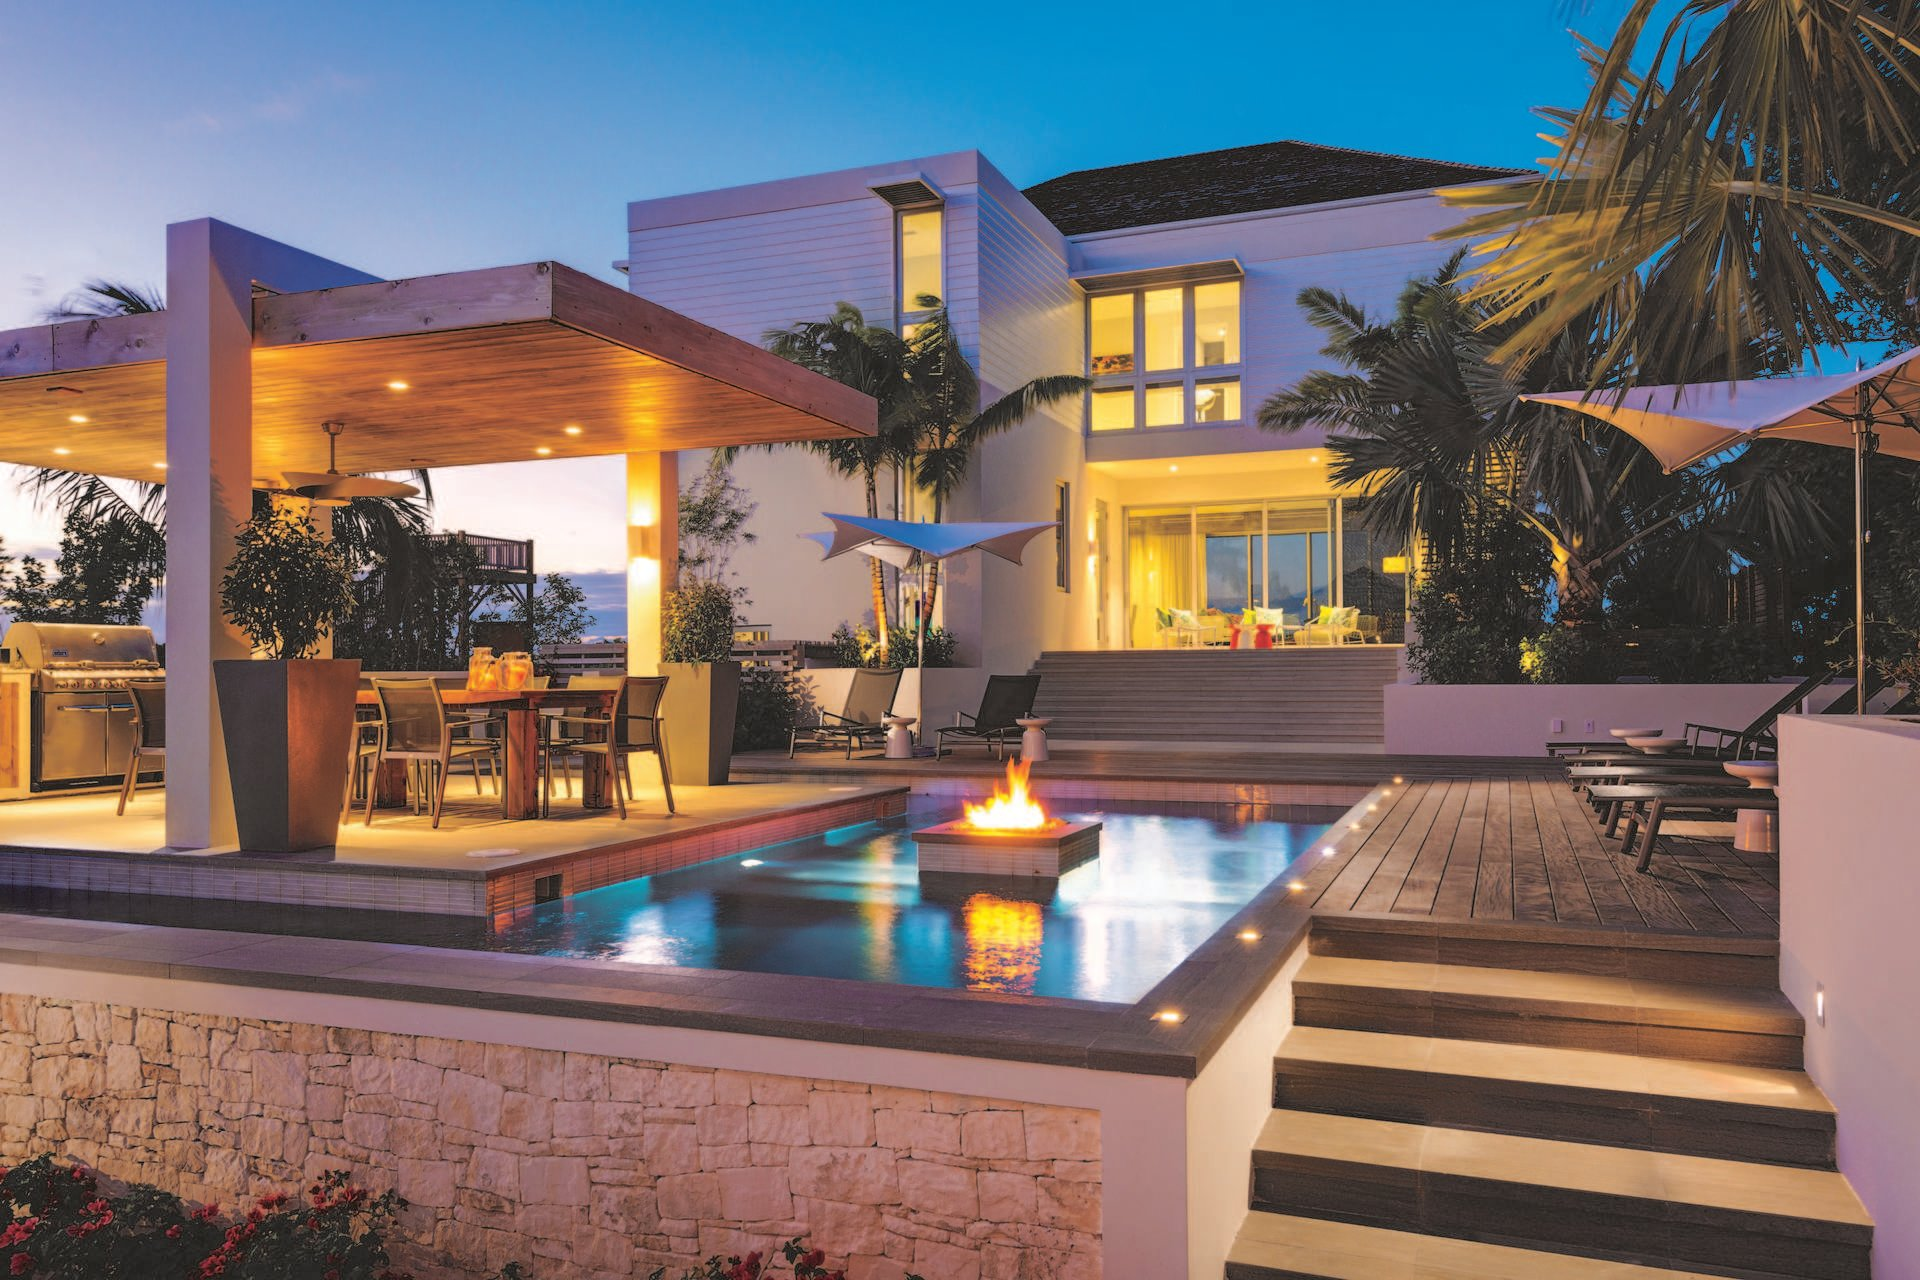 Luxury villa rentals caribbean - Turks and caicos - Providenciales - Grace bay club - The Dunes | Turtle Inlet - Image 1/6